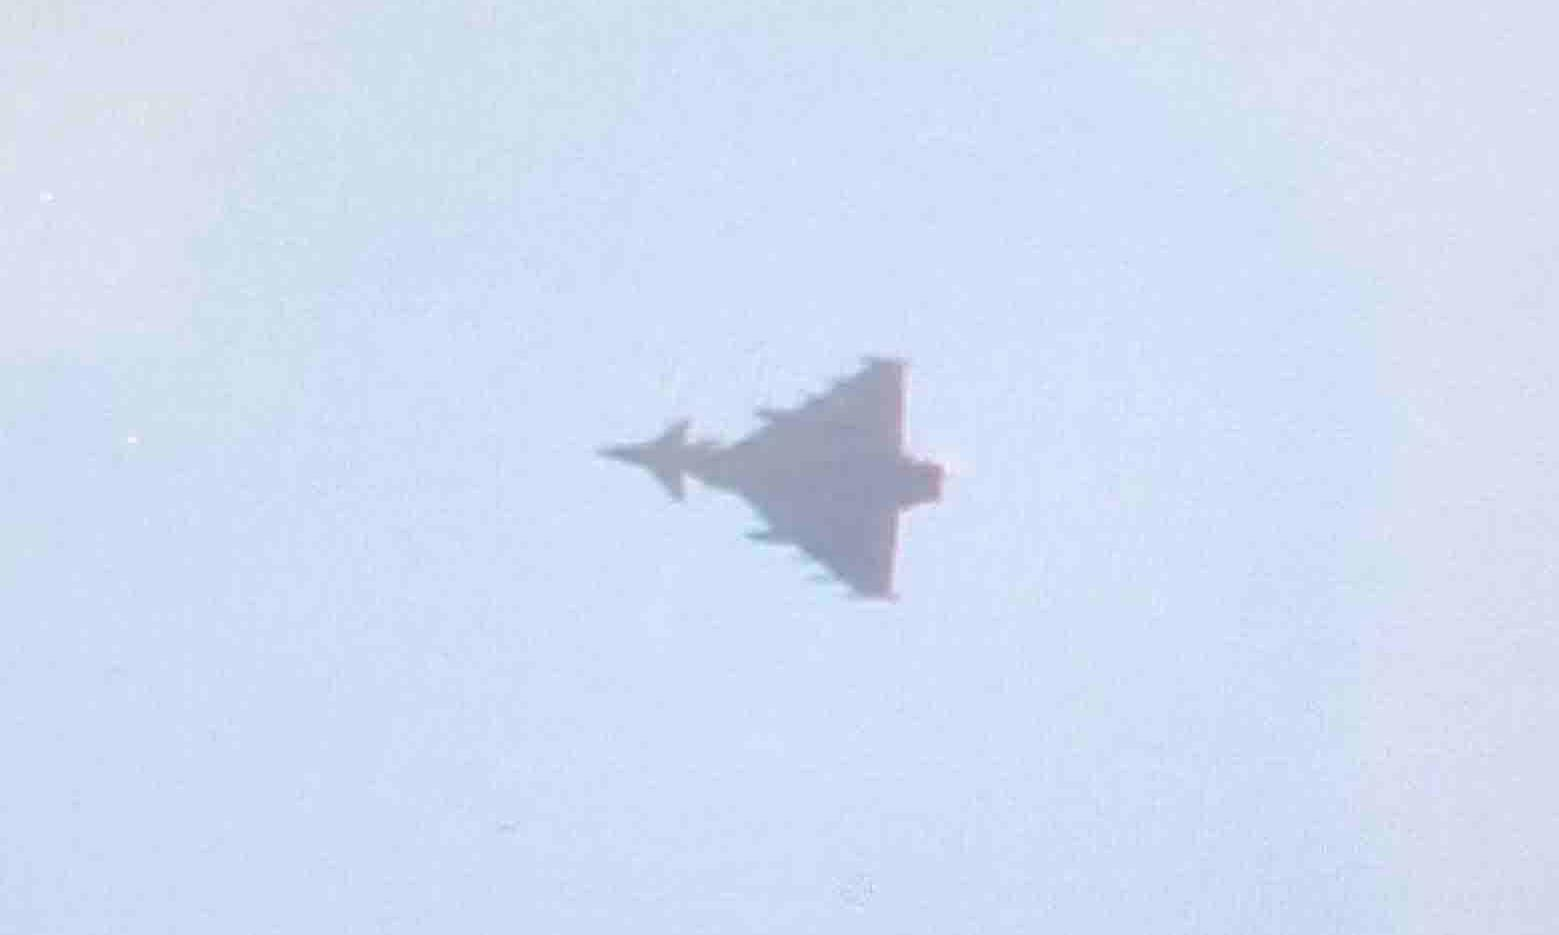 RAF jets escort Air India plane to Stansted after bomb threat